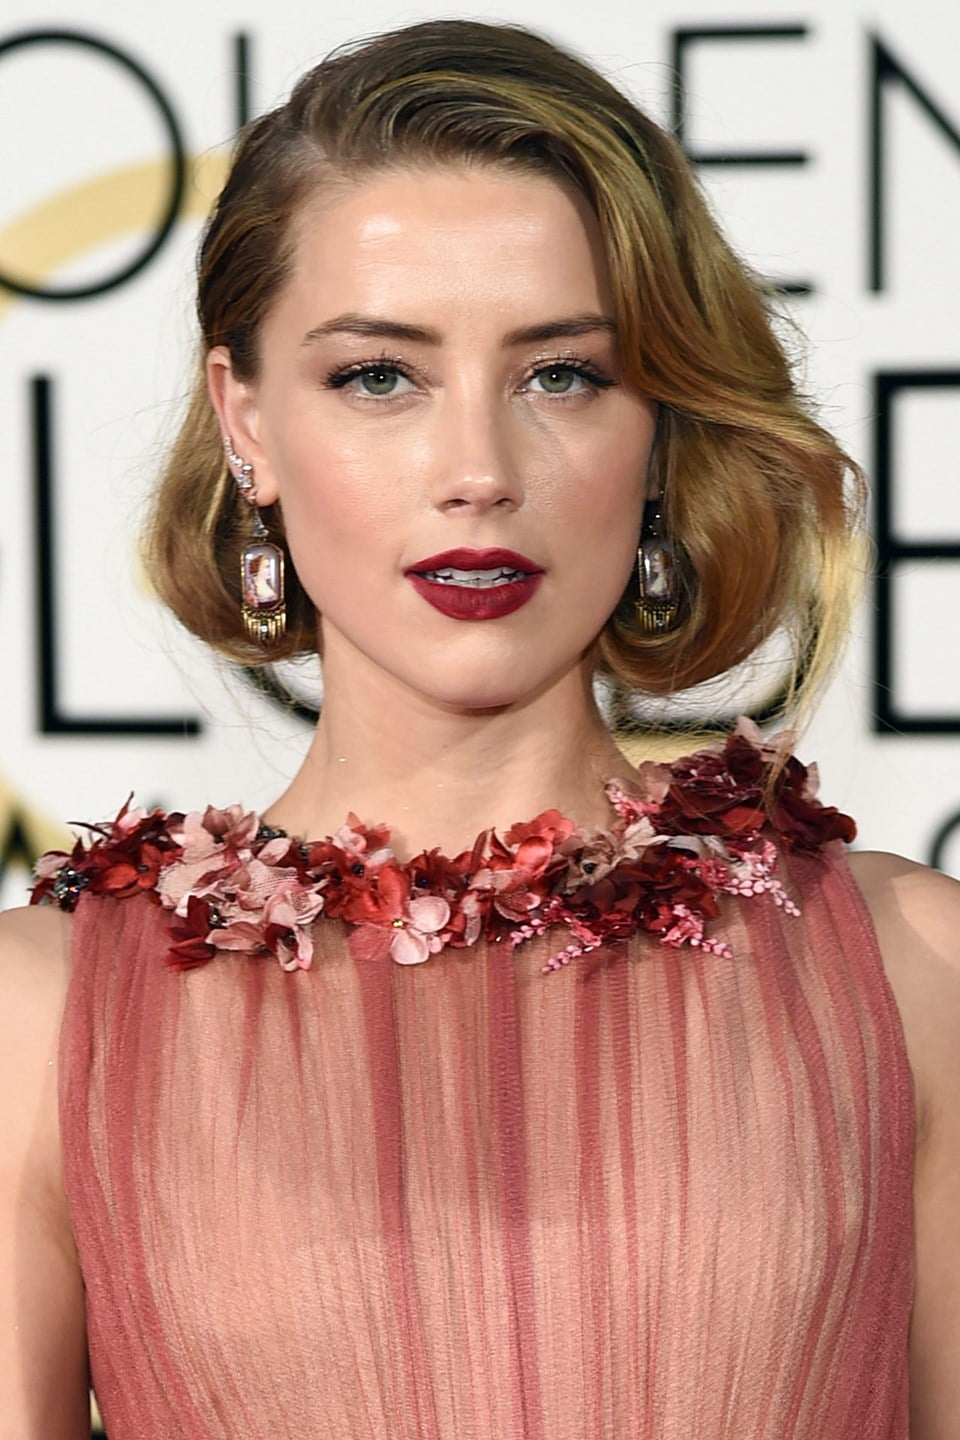 Amber-Heard-beauty-Glamour-10Jan15-Rex_b_960x1440.jpg